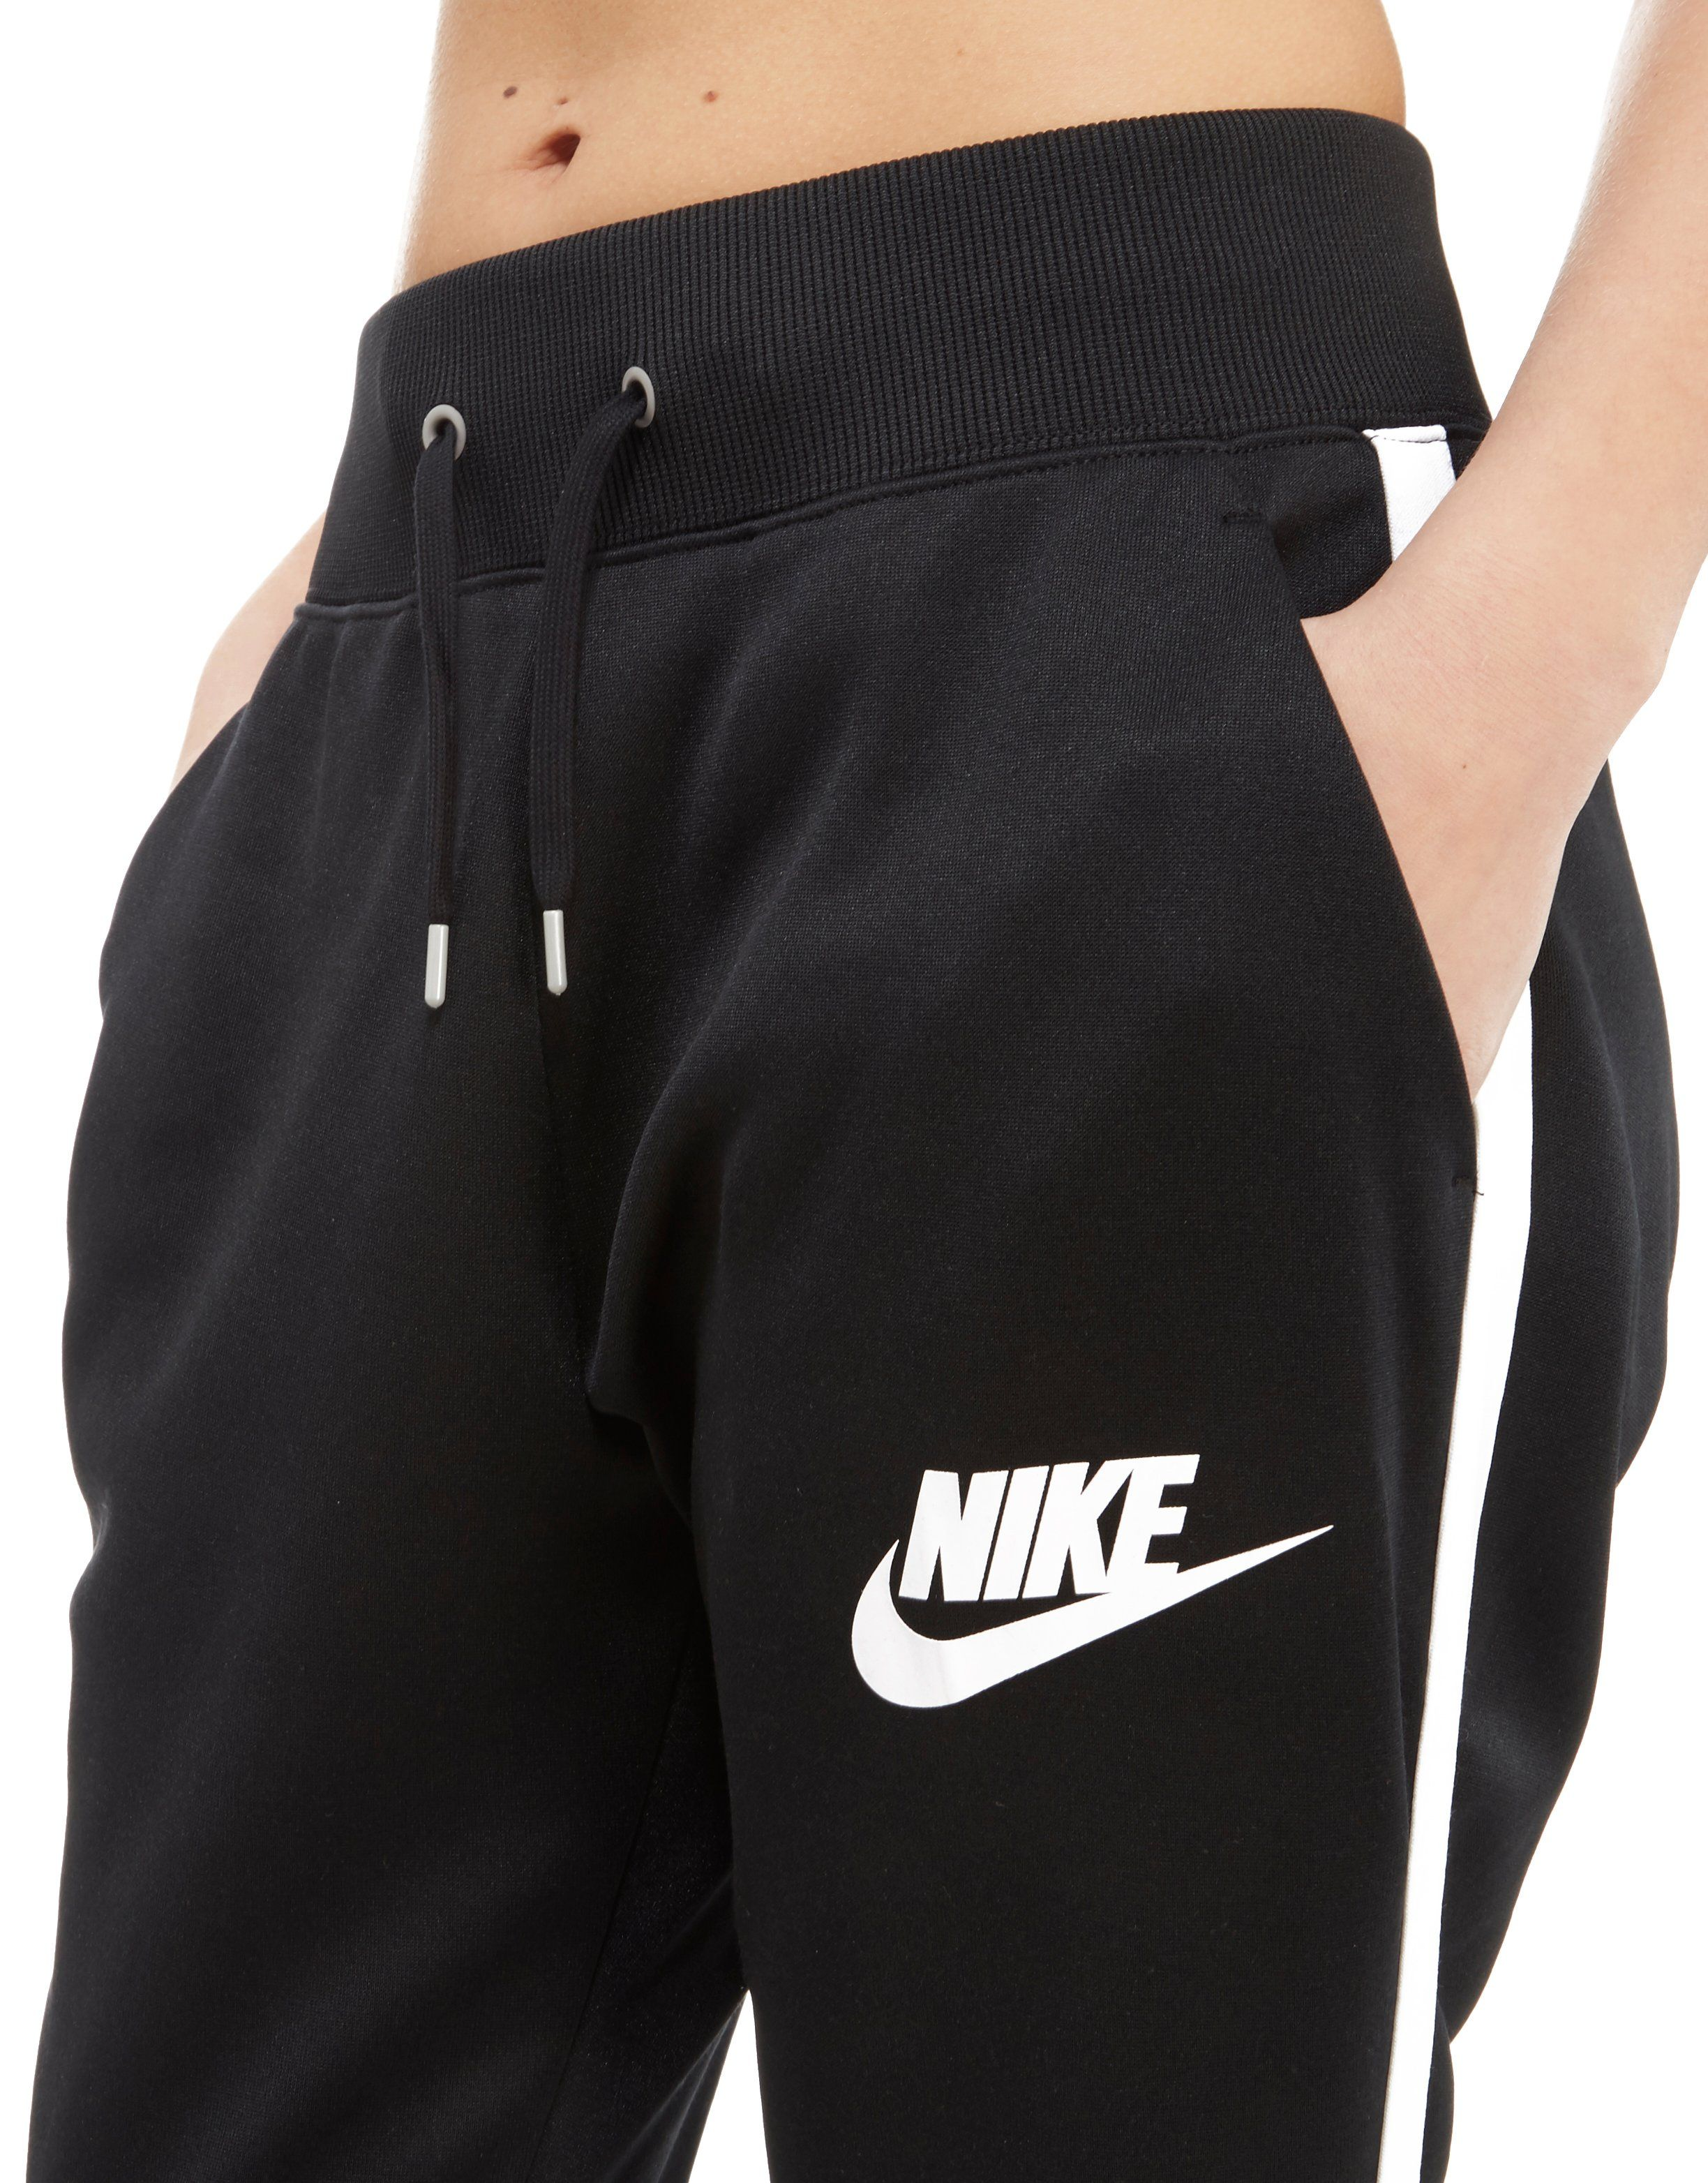 Nike Tribute Pants